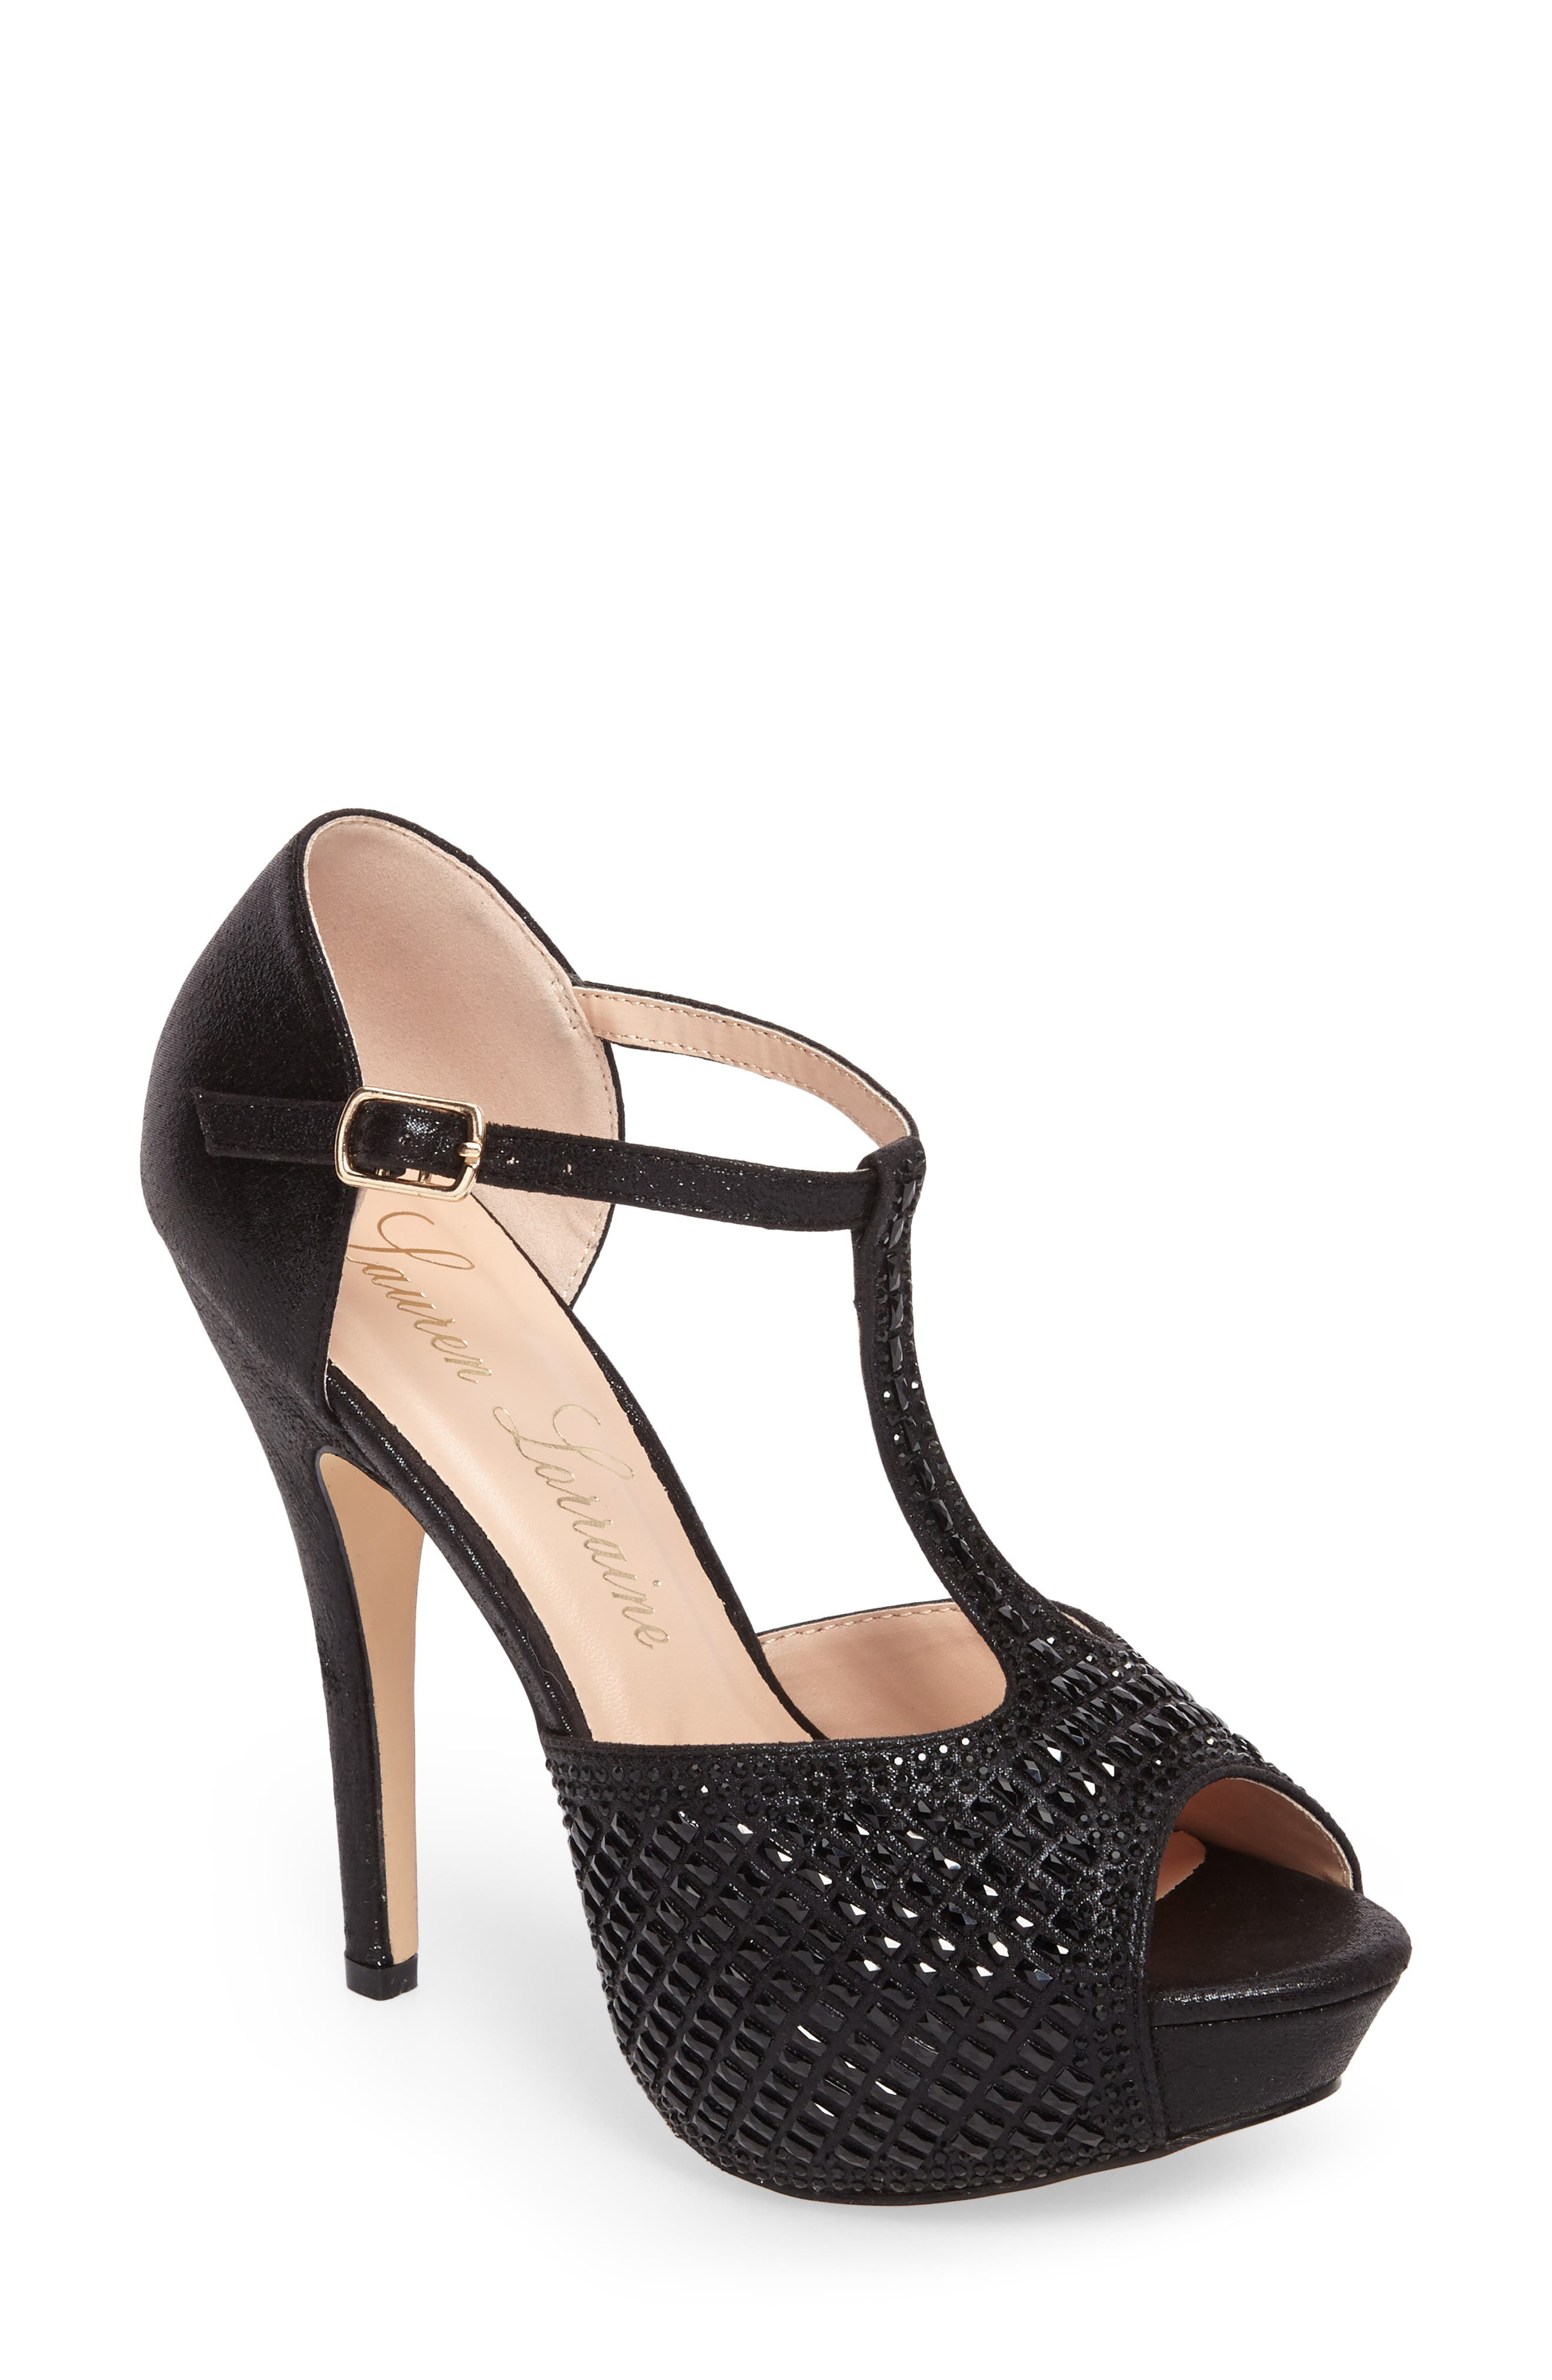 Vivian 4 Crystal Embellished Sandal,                         Main,                         color, Black Shimmer